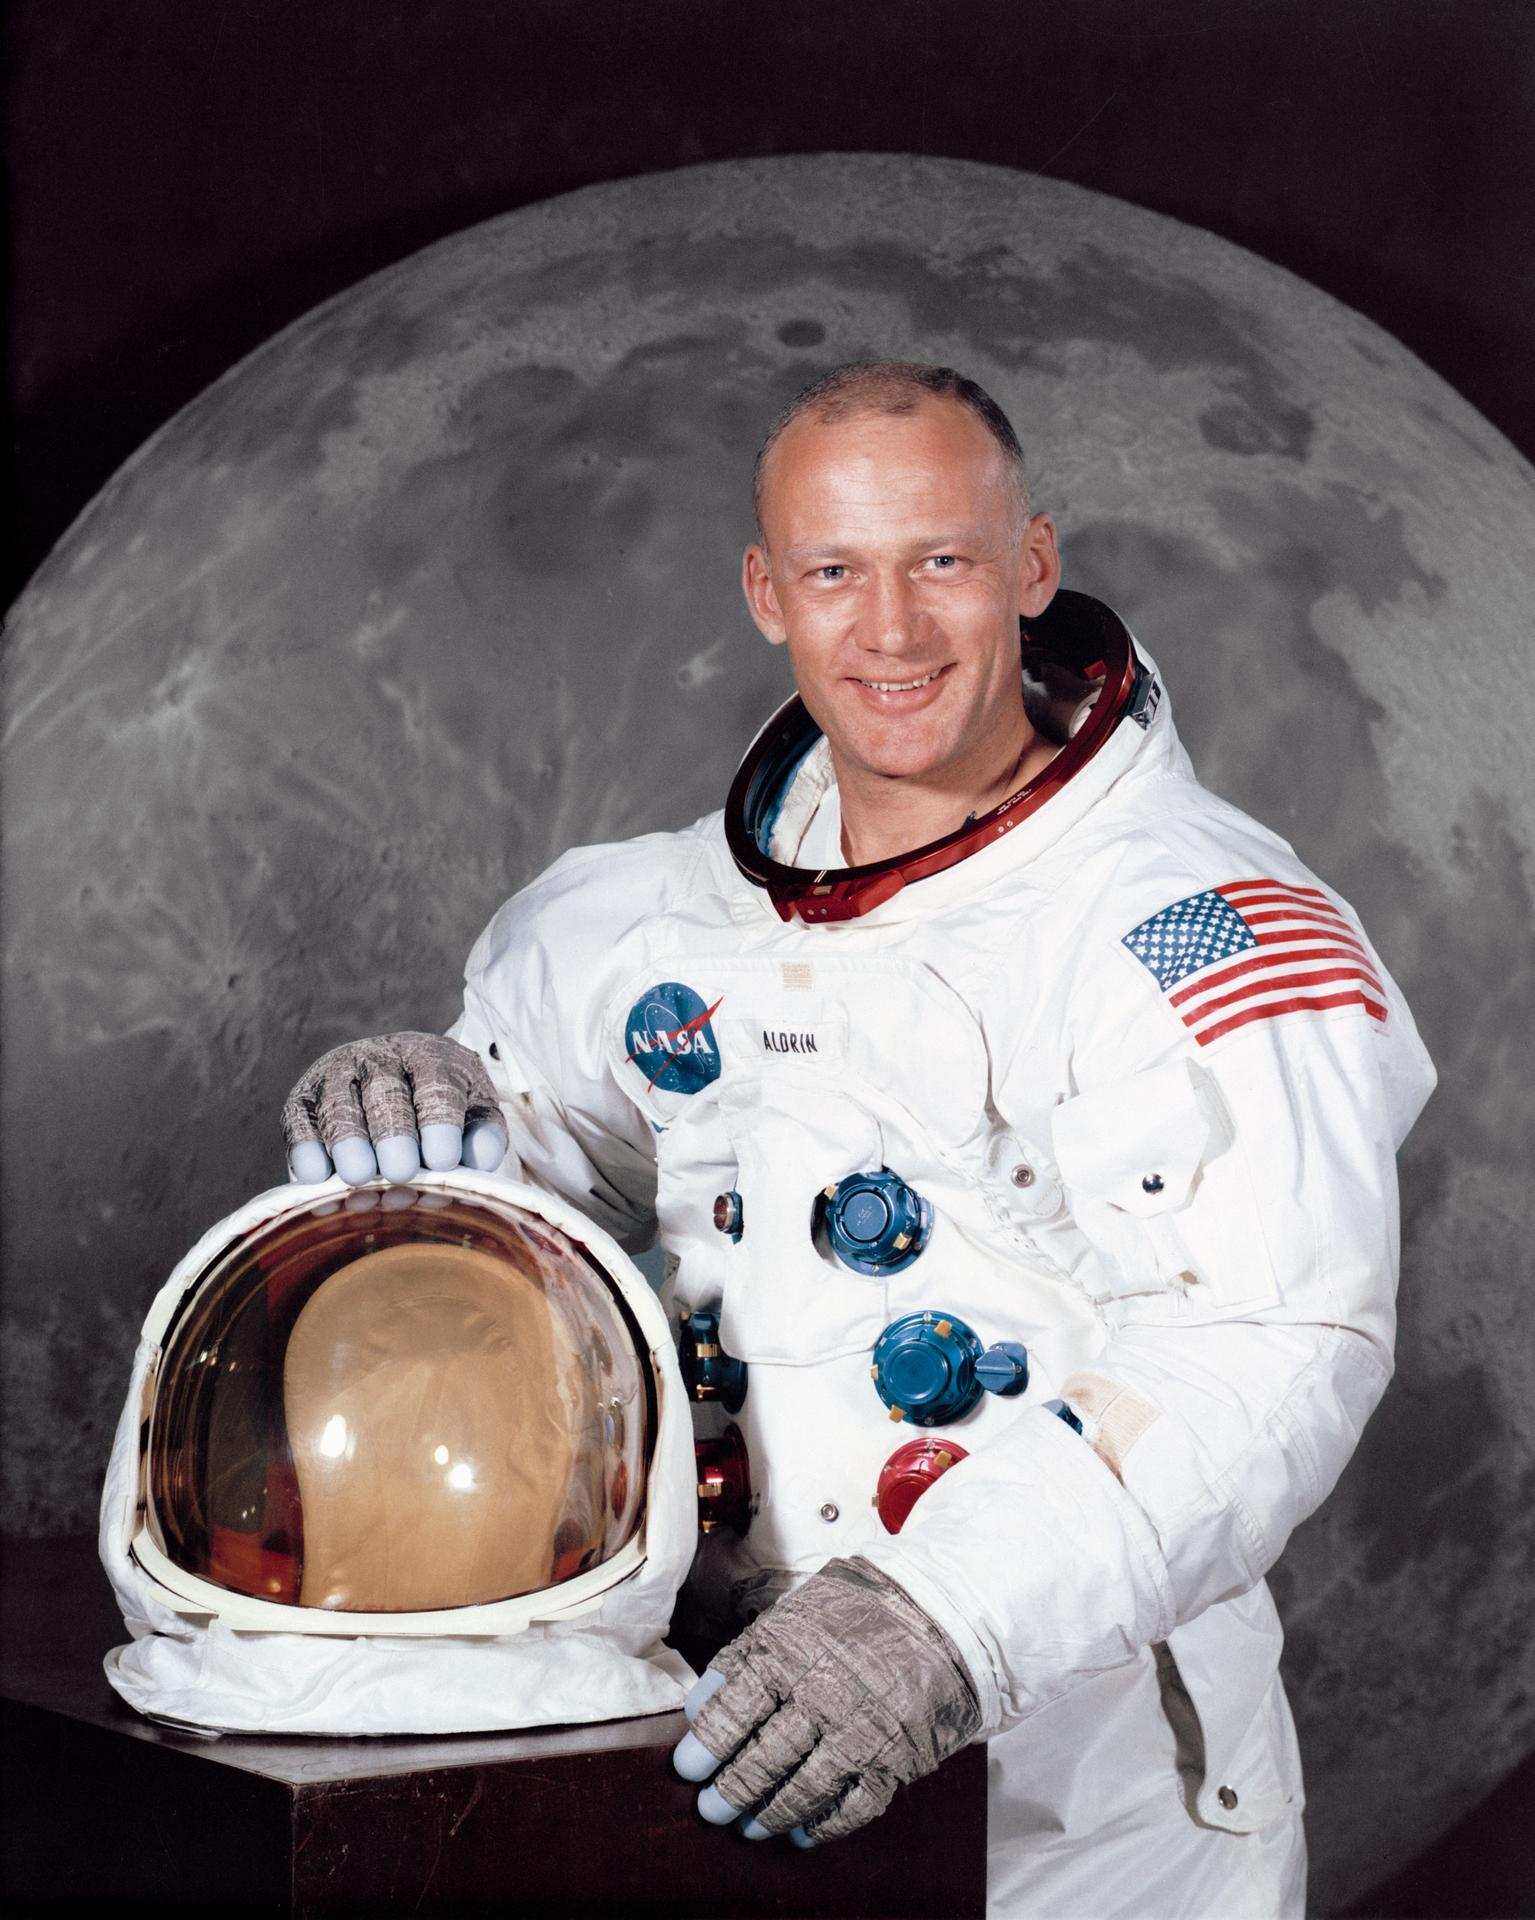 buzz aldrin says he is proud to be an american after - HD1240×1550